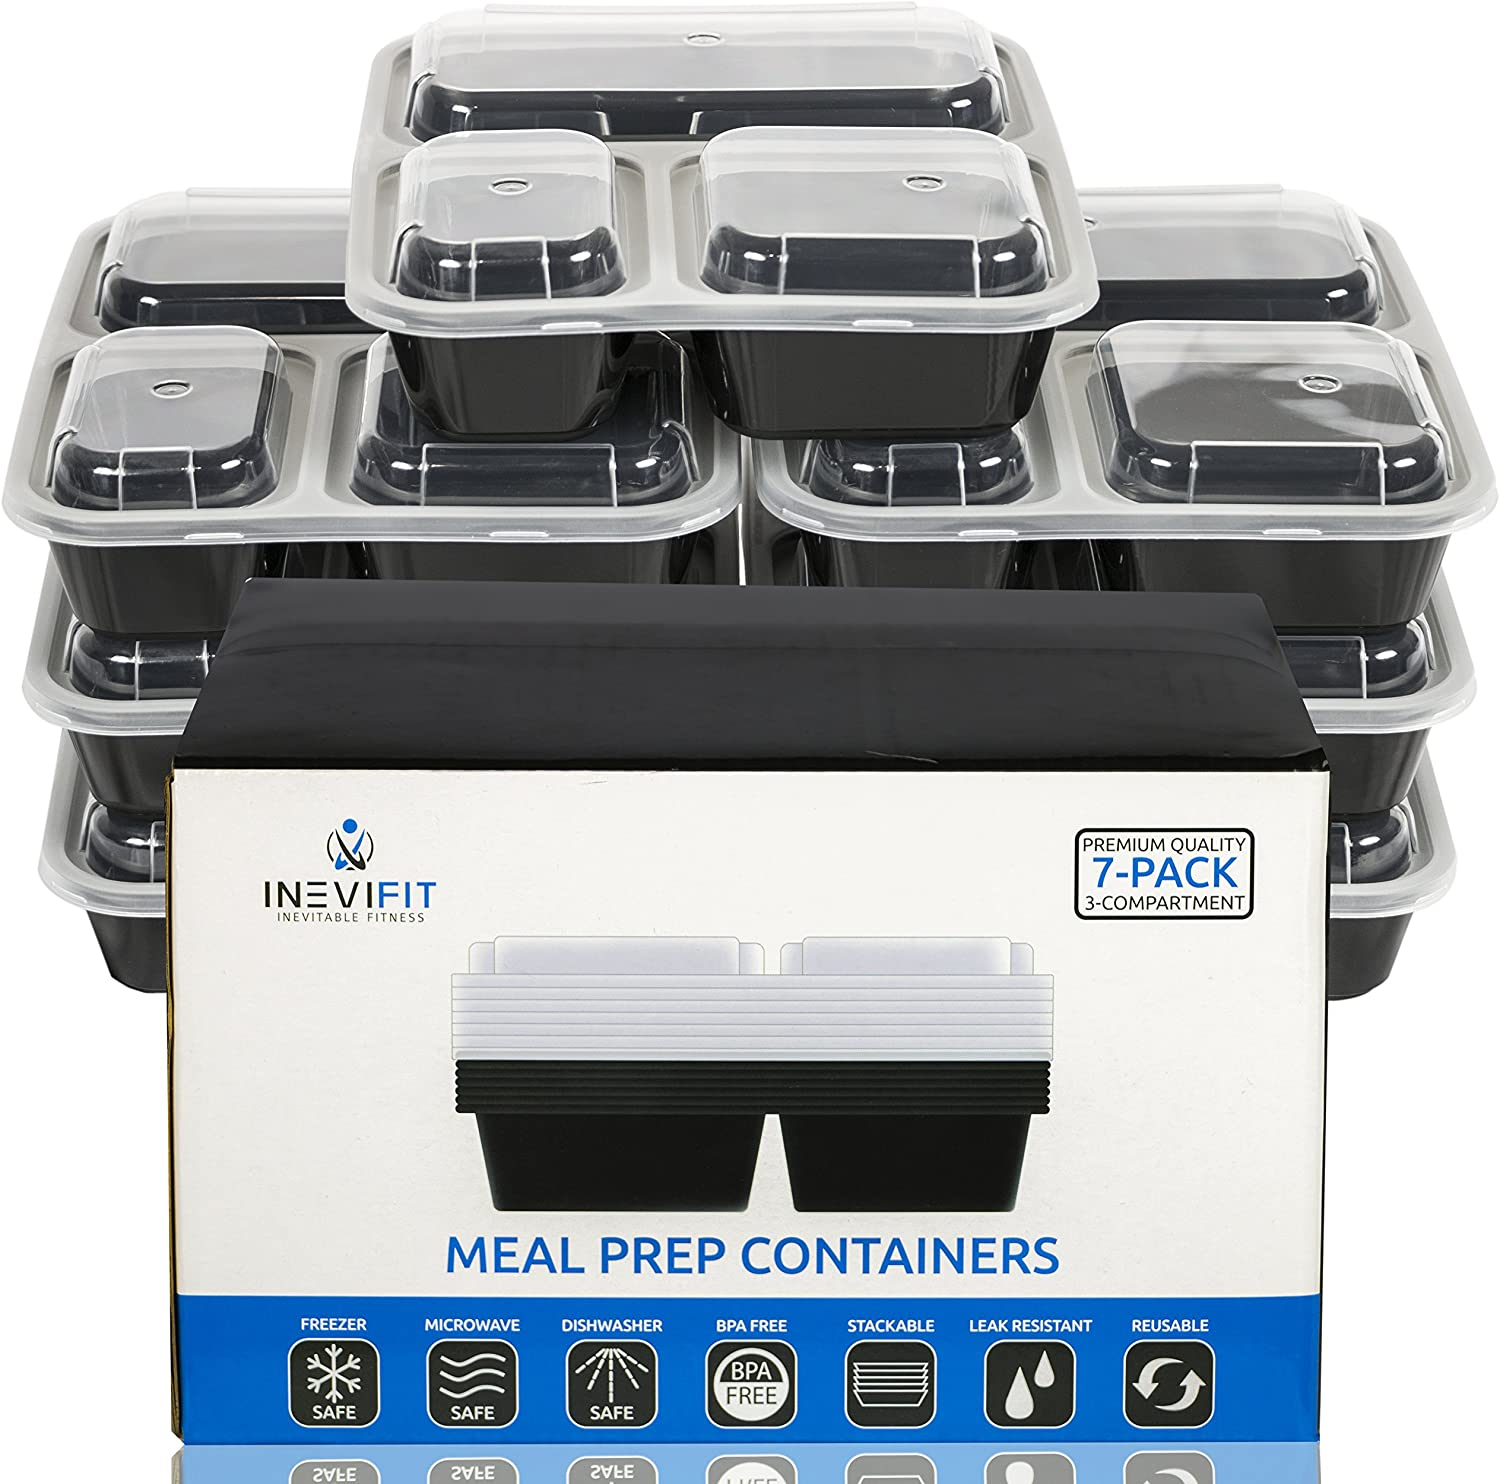 INEVIFIT Meal Prep 3 Compartment BPA FREE, Premium Food Storage Containers, Durable & Reusable, 36 oz. Stackable 7 Pack, Microwaveable & Dishwasher Safe Bento Lunch Box with Leak Resistant Technology